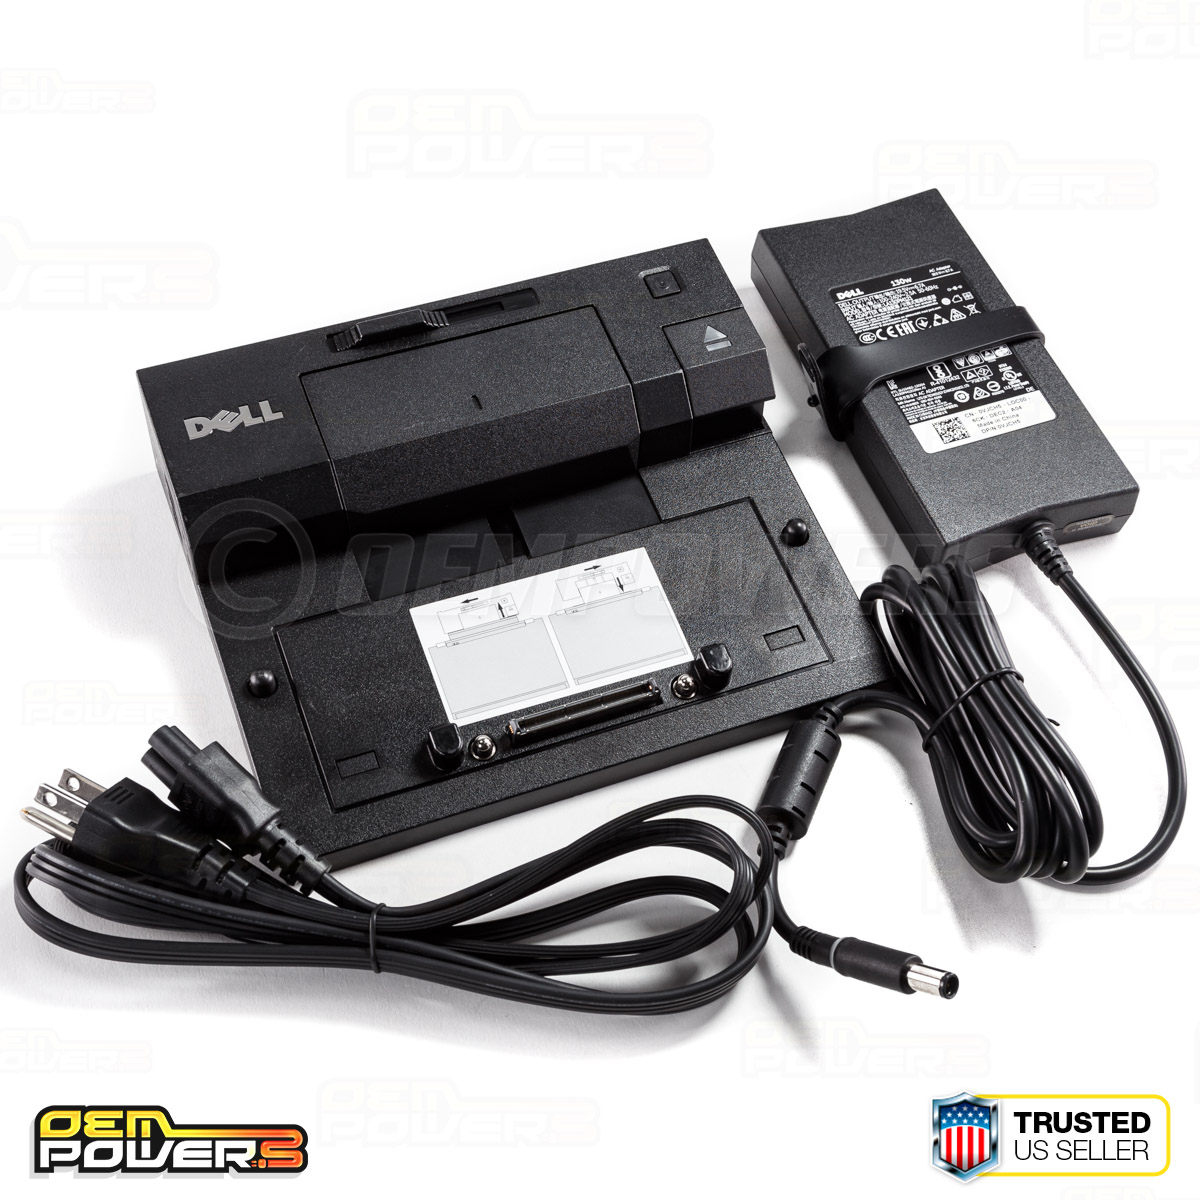 Details about Dell E-Port Docking Station Replicator M2800 E5250 E5540  E6440 +PA-4E AC Adapter